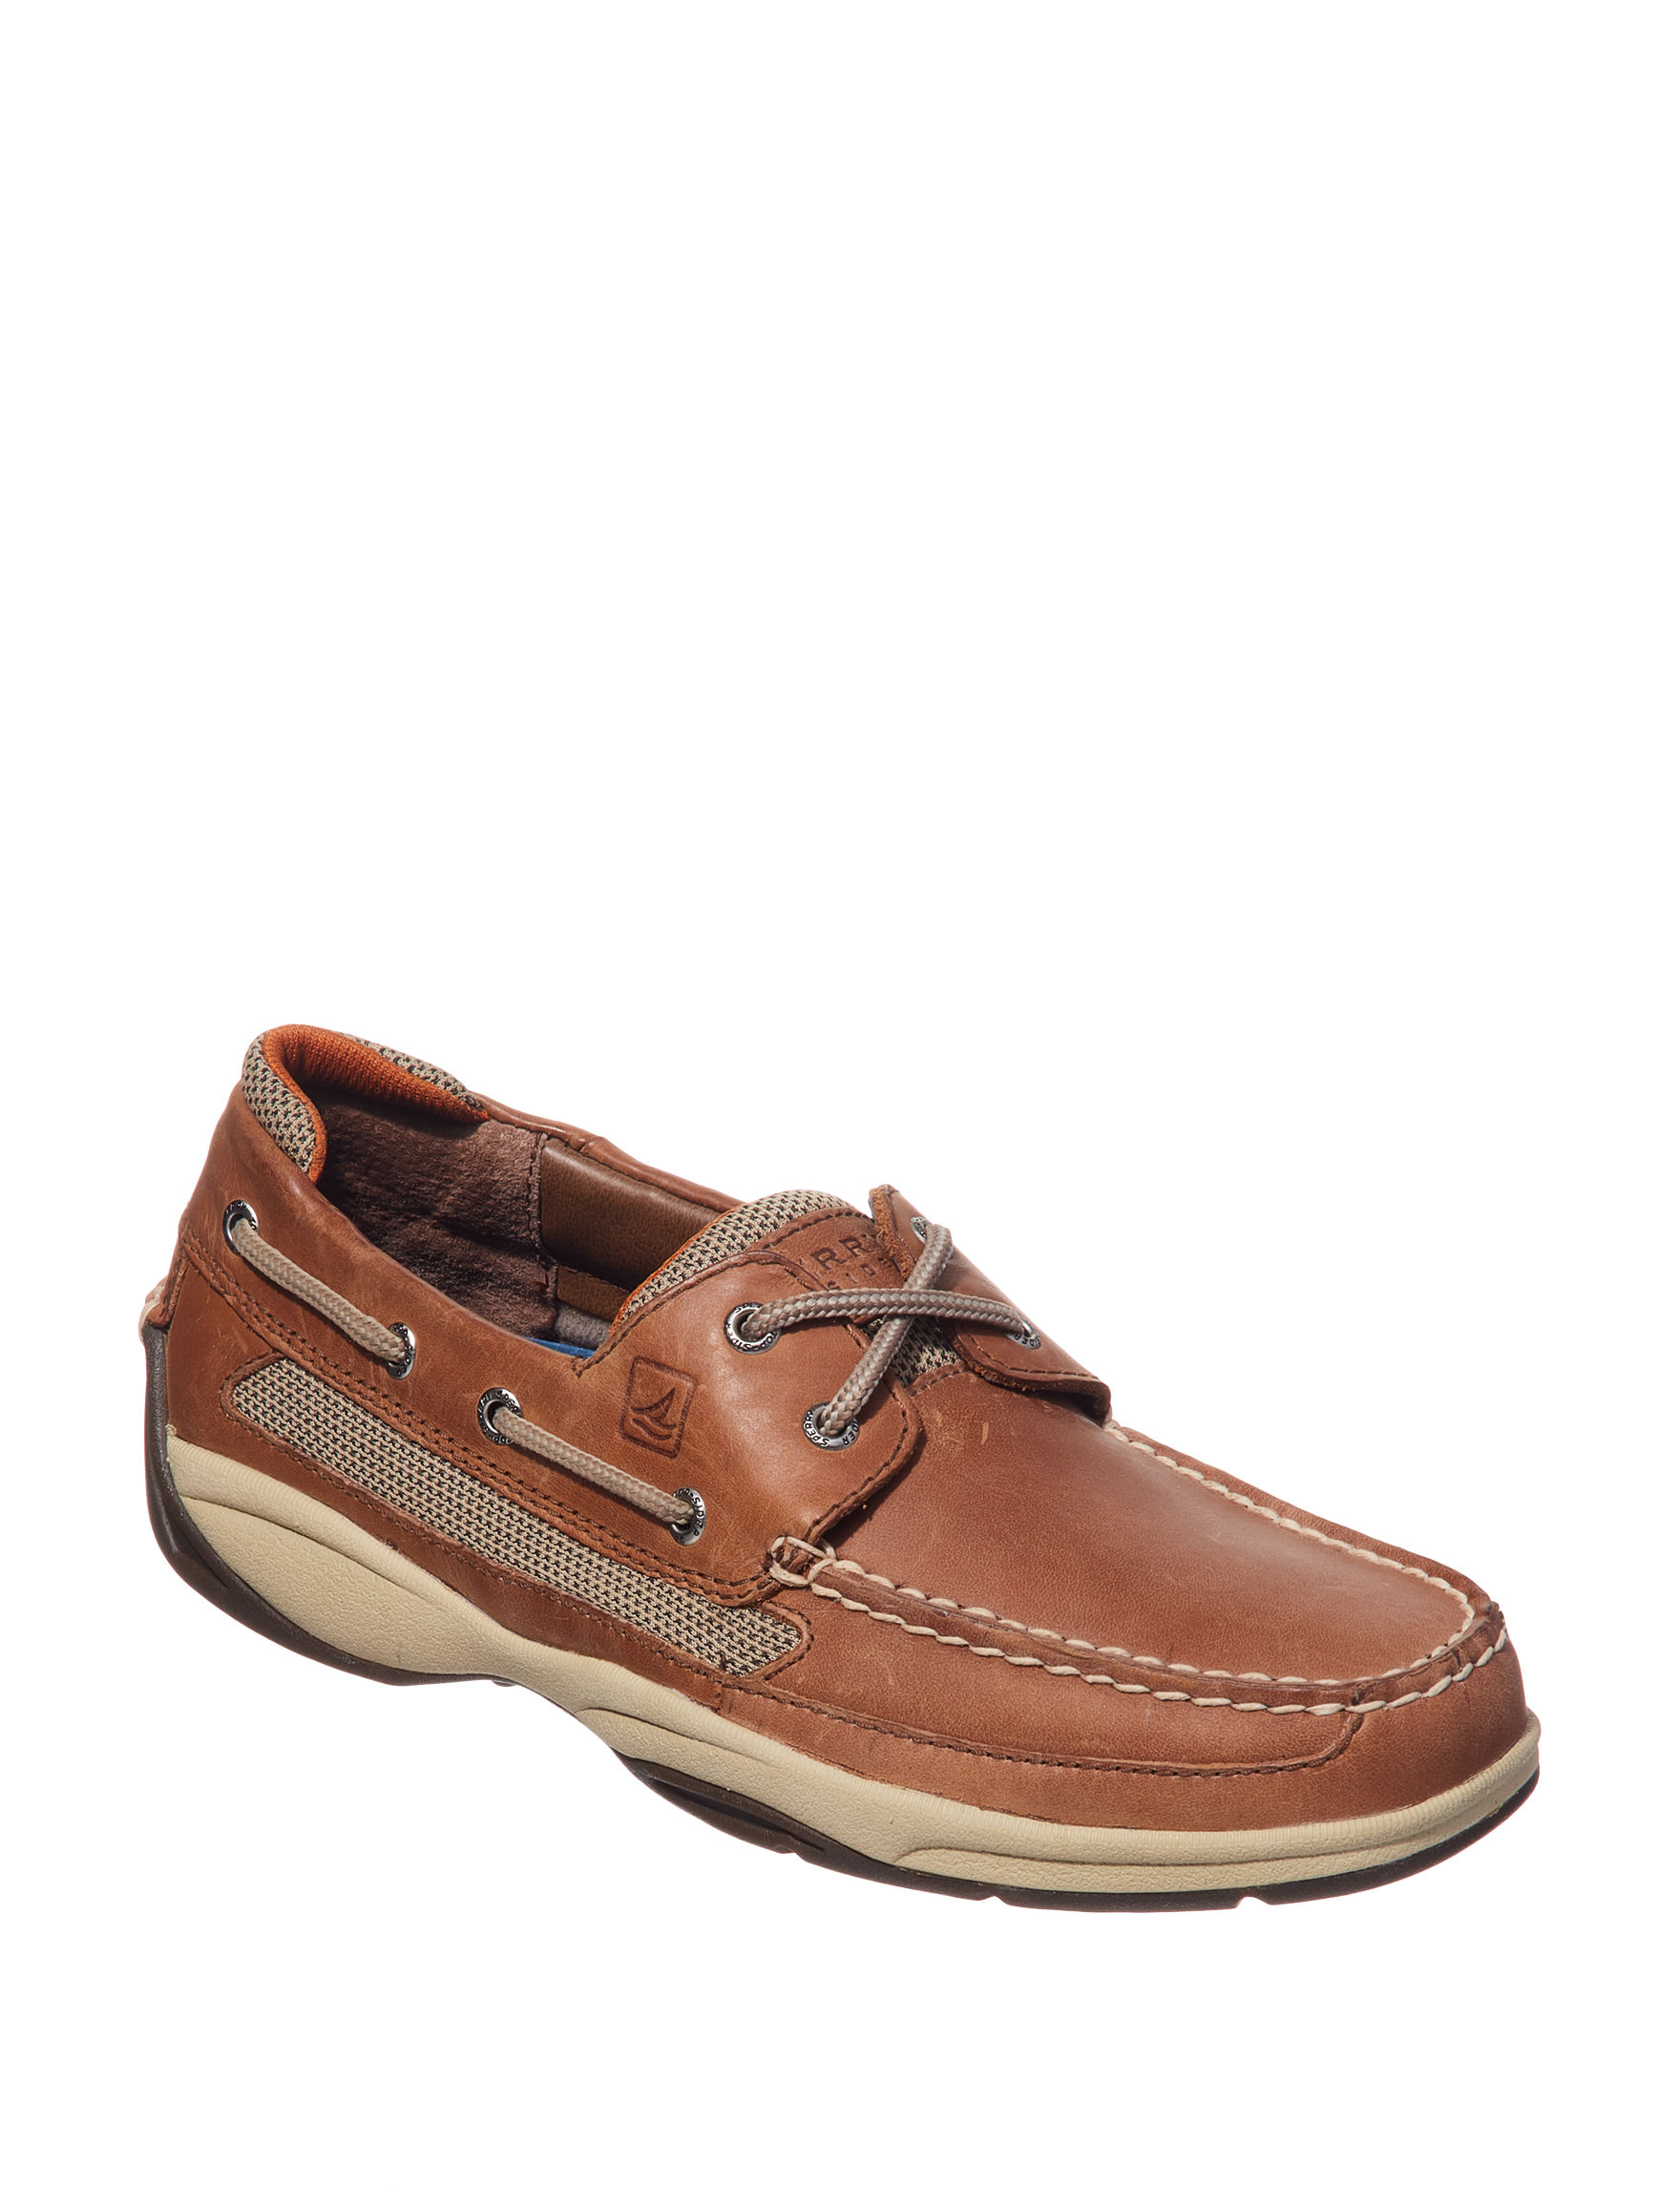 Sperry Dark Tan